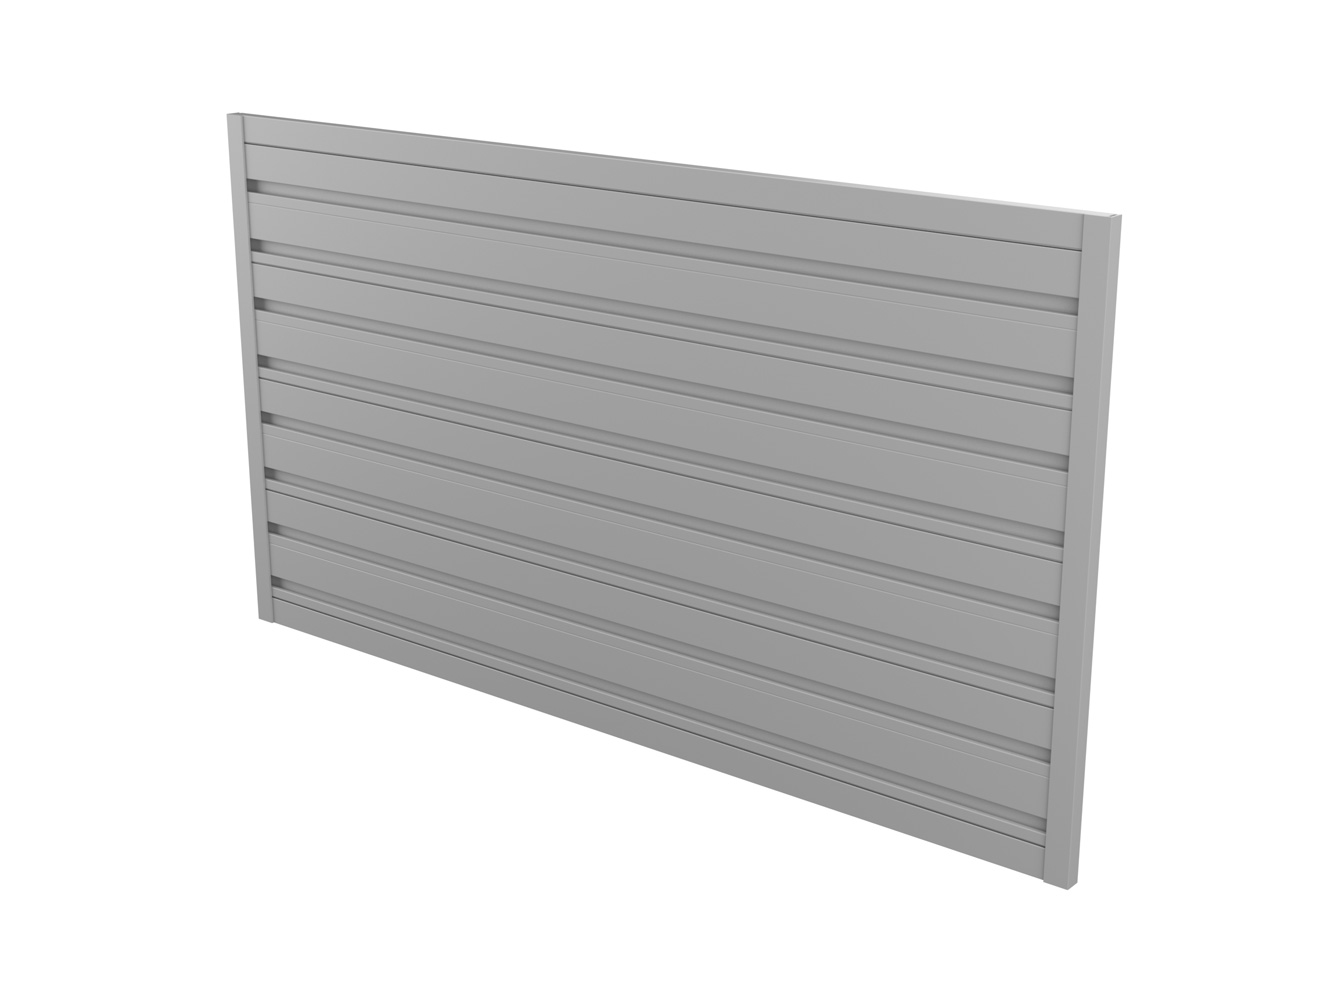 NORSK Heavy Duty NorskWall™ Panel Kit PartNumber: 00948932000P KsnValue: 8575162 MfgPartNumber: NSNW4PP